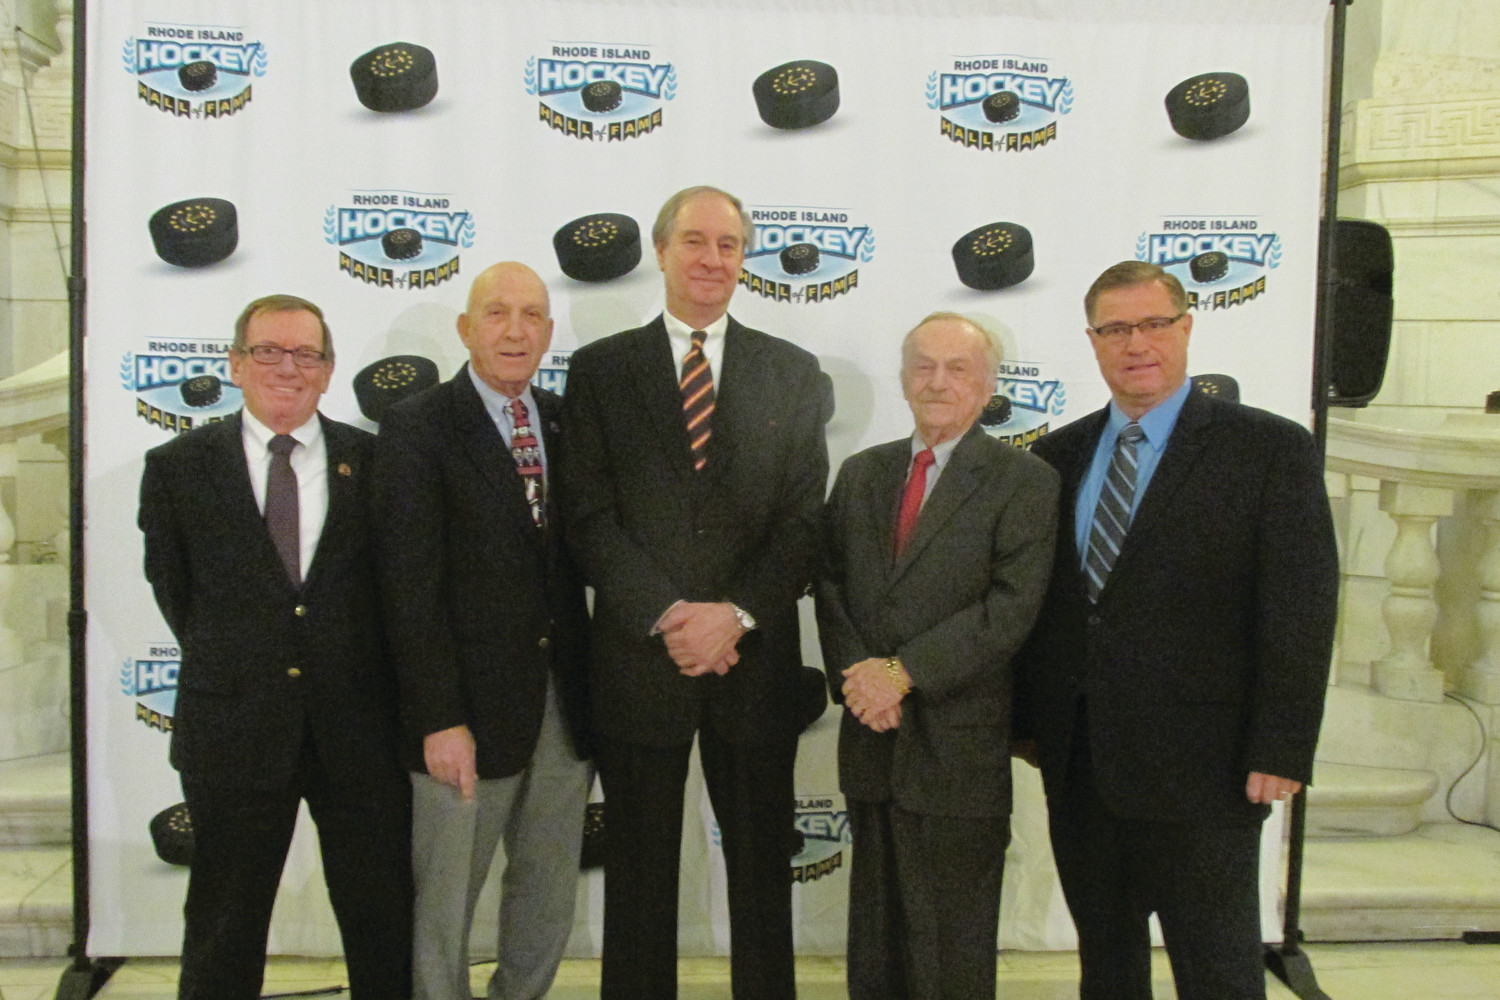 FOUNDING FATHERS: These are five of the nine long-time hockey aficionados who have been working quietly since 2016 and Tuesday announced the establishment of the Rhode Island Hockey Hall of Fame. The group includes, from left: Bill O'Connor, Mal Goldenberg, Chairman Vincent Cimini, Arnold Bailey and Robert Larence. (Sun Rise photos by Pete Fontaine)